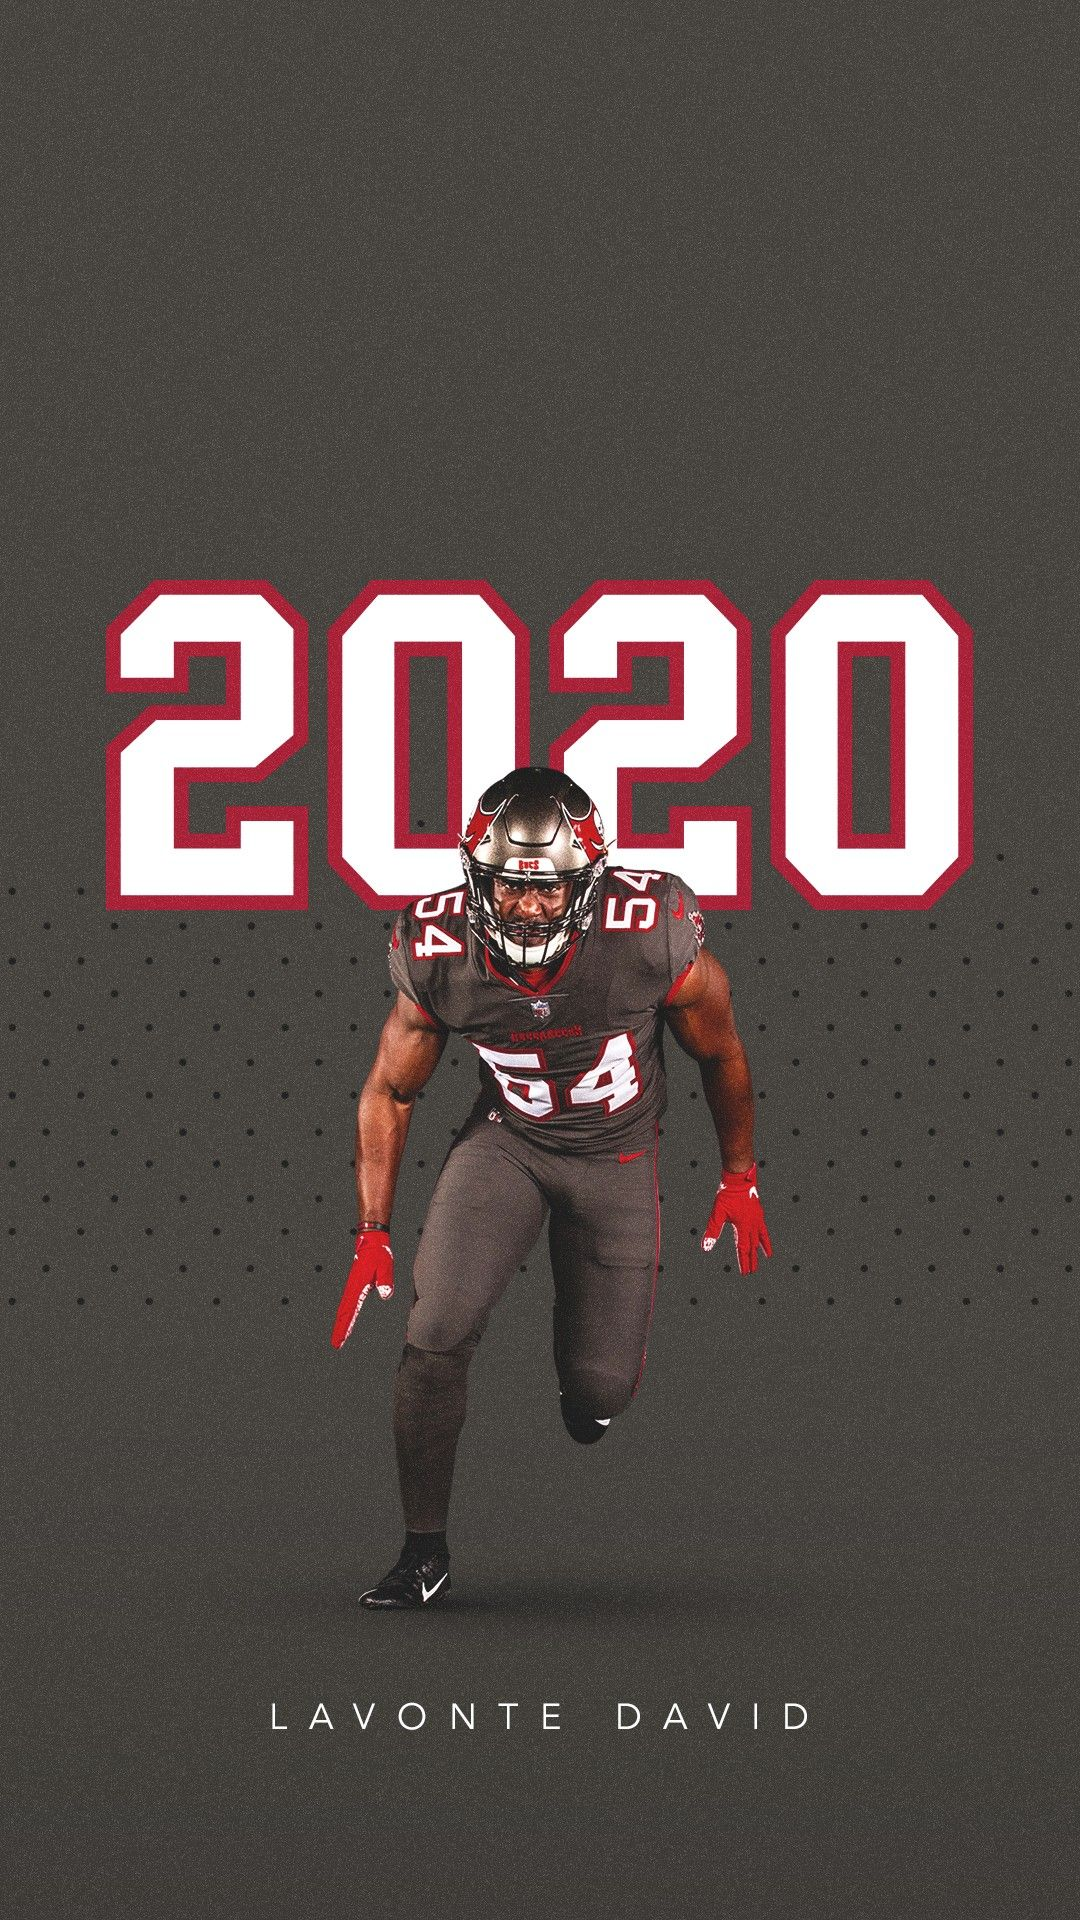 Pin By Carlos Moseley On Firethecannons In 2020 Tampa Bay Buccaneers Football Bucs Football Tampa Bay Bucs